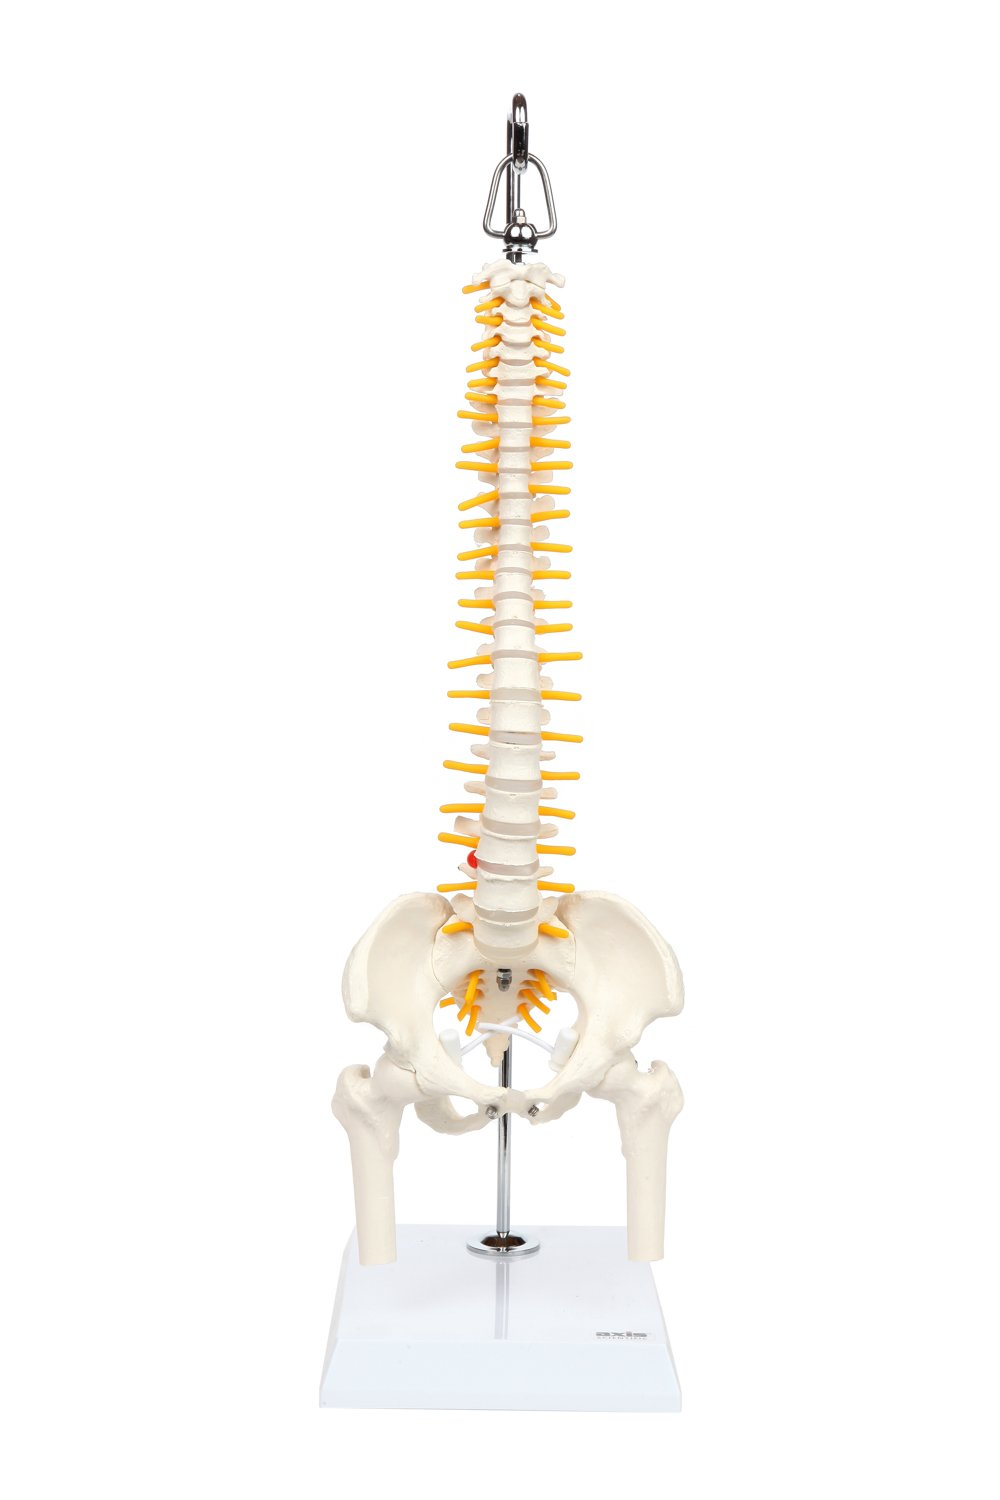 Axis Scientific Mini Flexible Spine Model | Desktop Spinal Cord Model Displays Vertebrae, Nerves, Arteries, Lumbar Spine, and Pelvis | Includes Stand and Detailed Product Manual | 3 Year Warranty A-105162